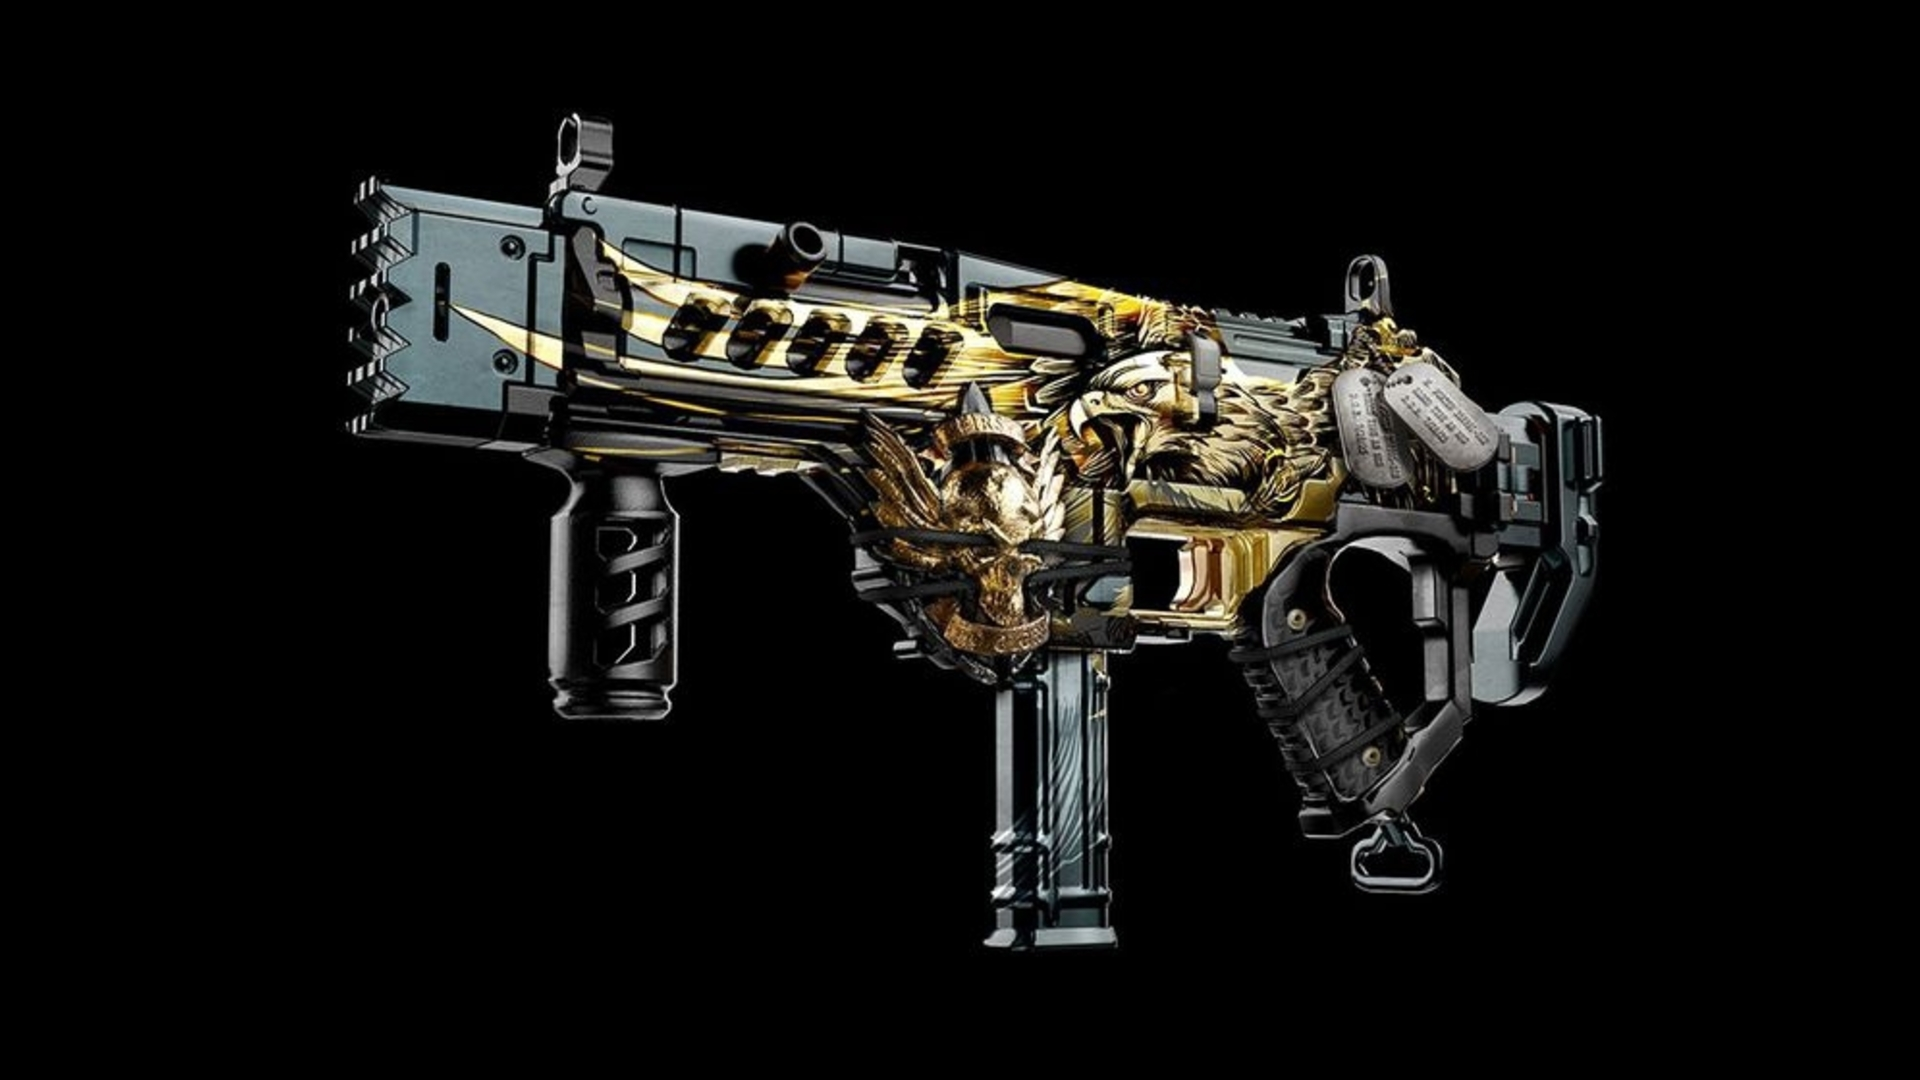 Signature Weapons for Call of Duty Black Ops 4 revealed • Eurogamer